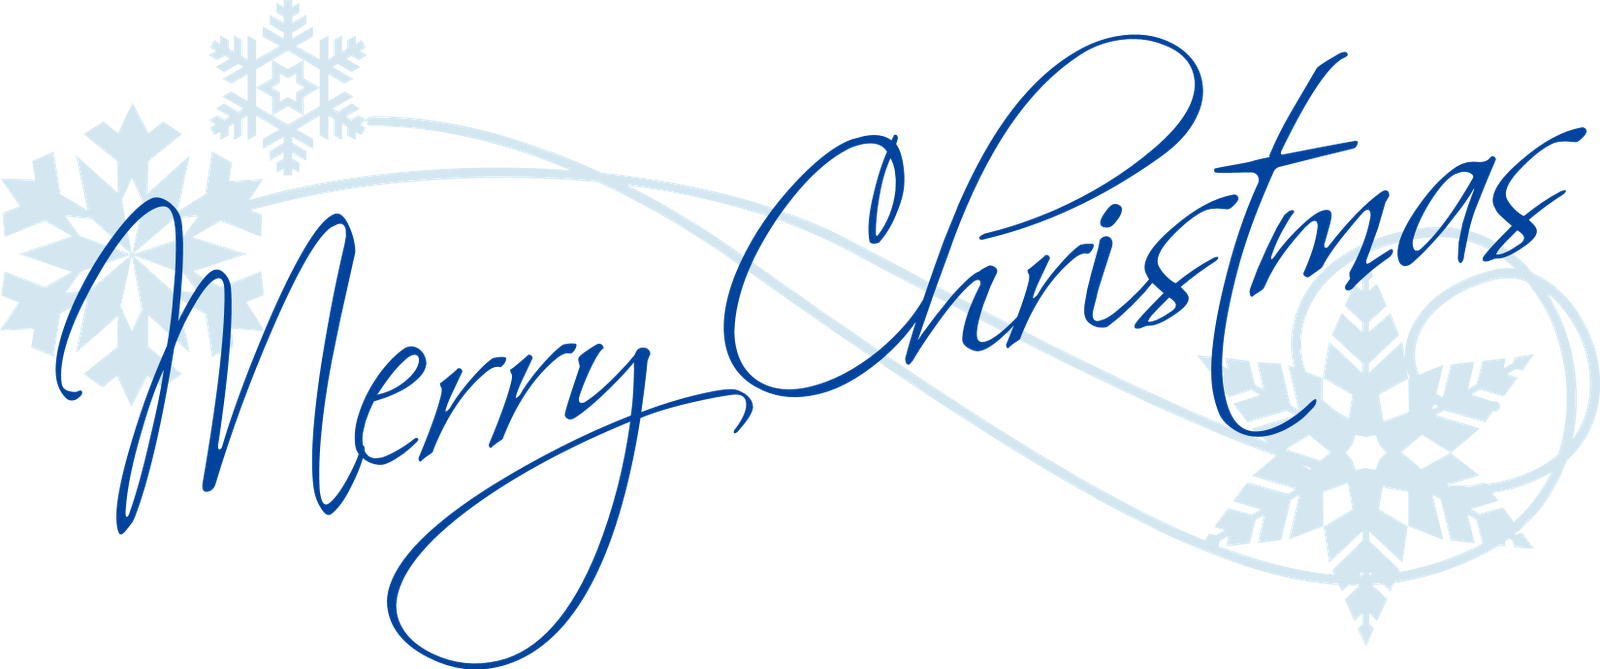 Alfa img - Showing > Merry Christmas Transparent Png